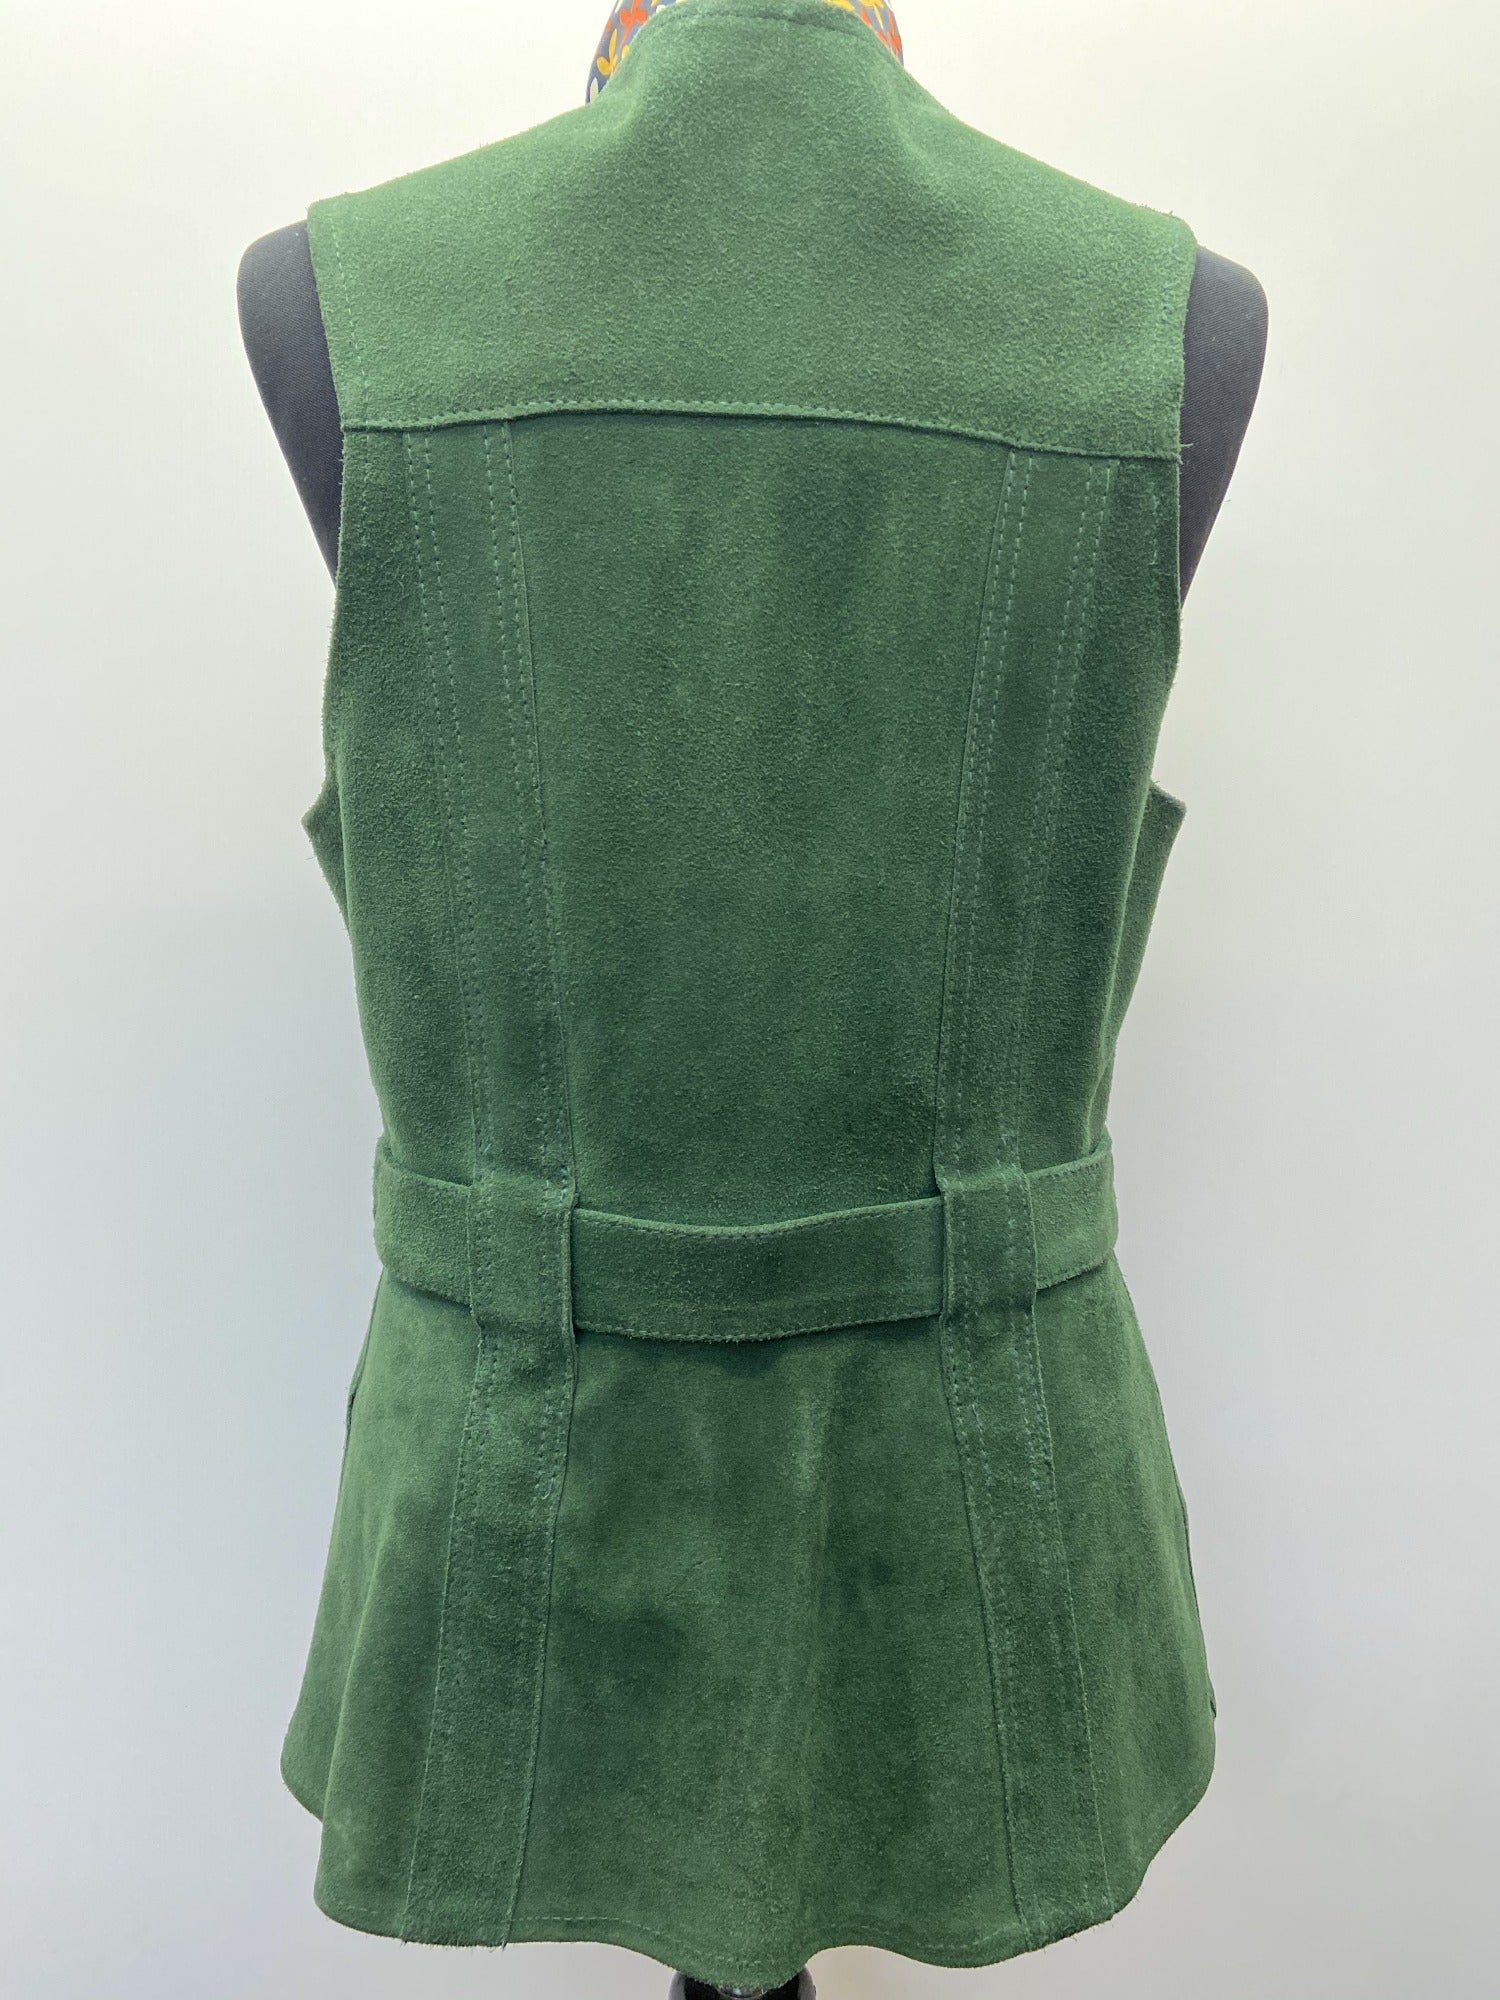 vintage 60s 1960s 70s 1970s mod hippie boho gogo psych green suede waistcoat tunic vest jacket top belt buckle womens clothing urban village